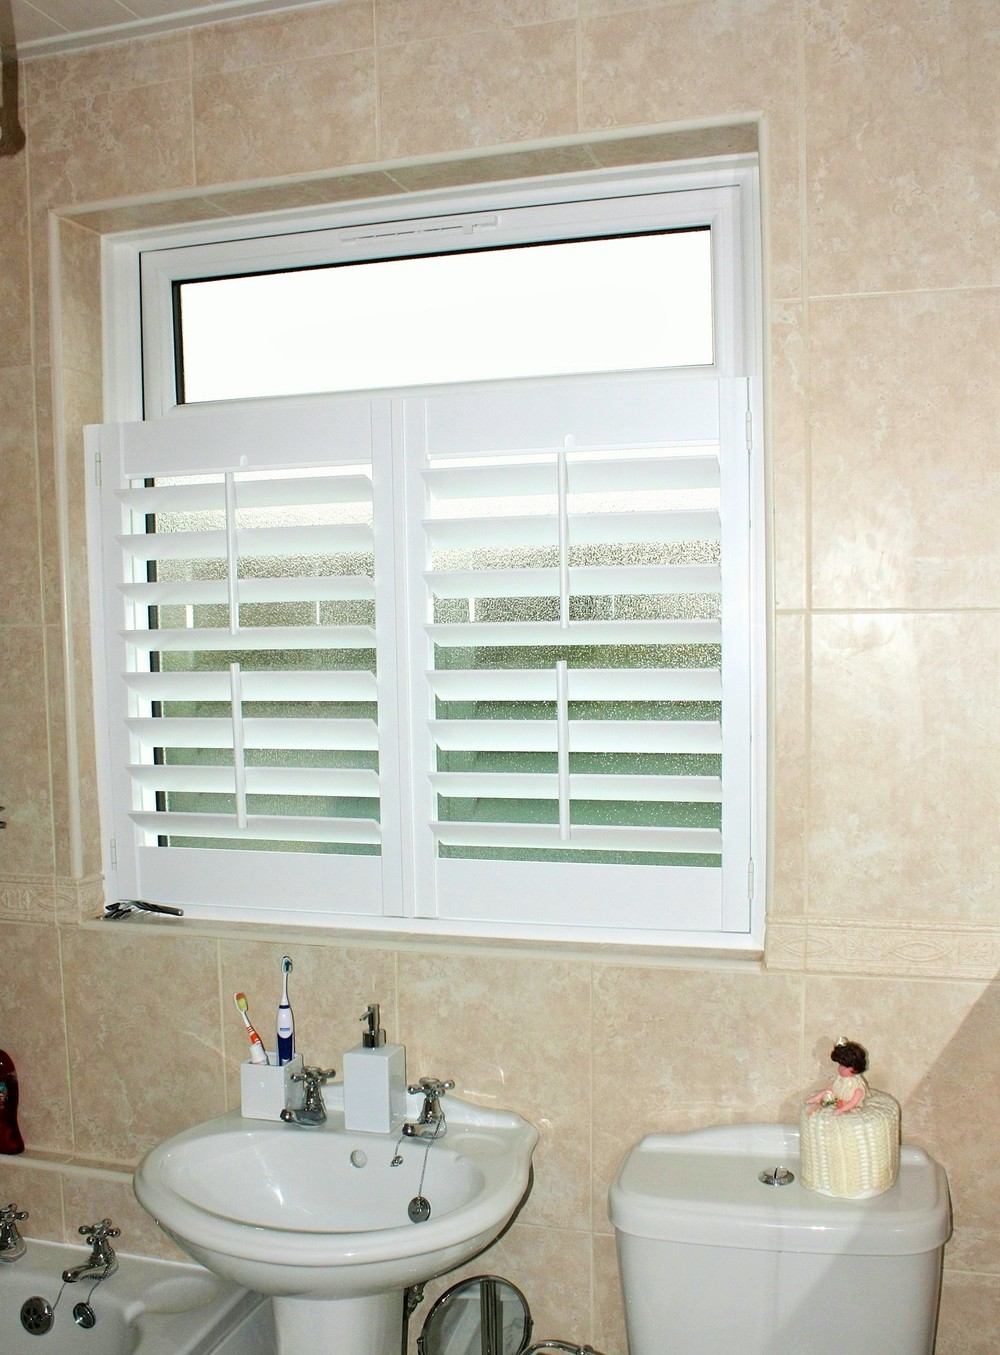 shutters-for-toilet-window.jpg